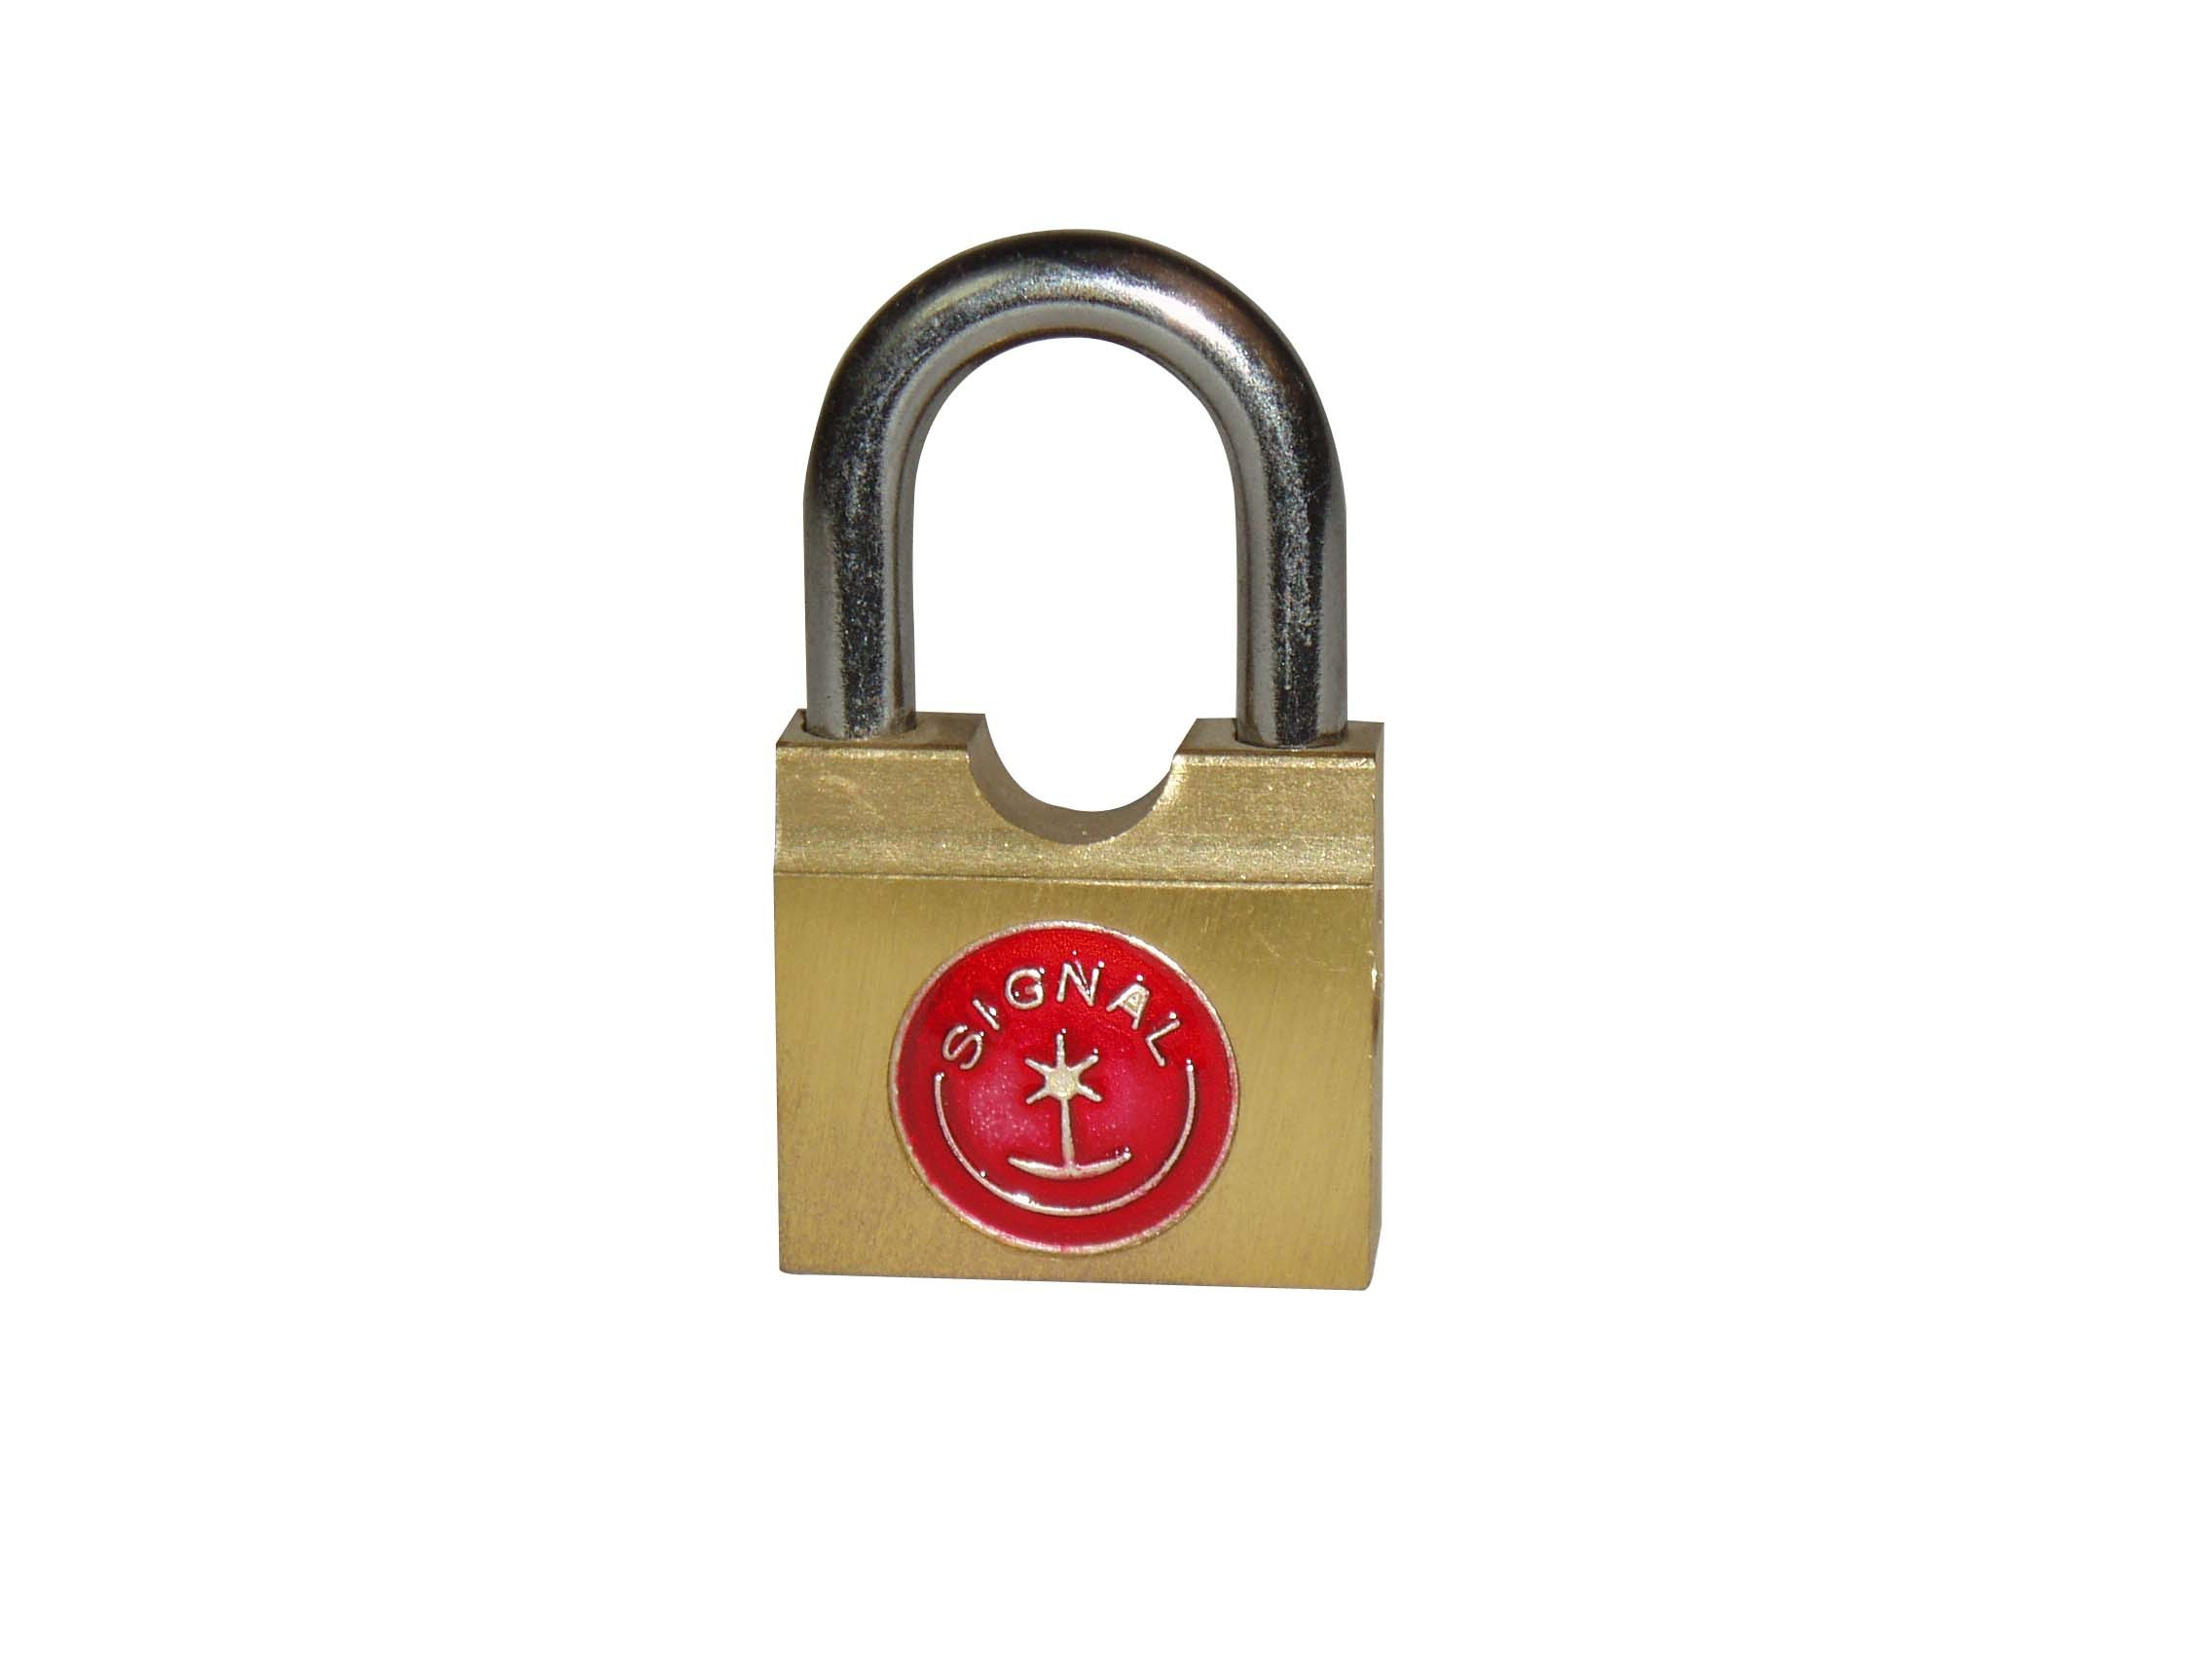 High Quality Side-Opening Brass Padlock From China